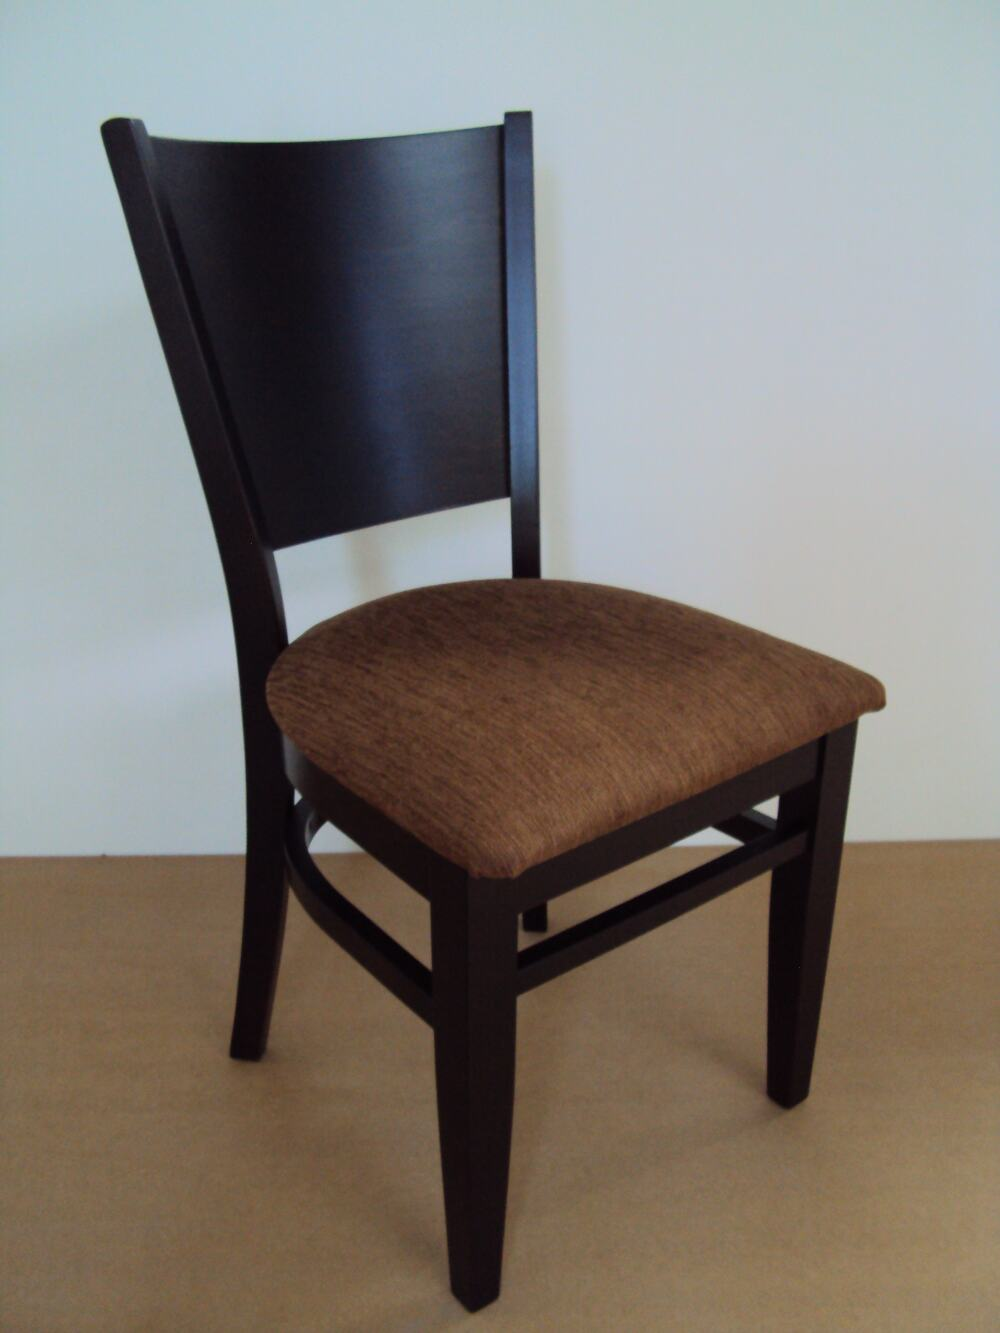 Professional Chair Venezia For Restaurant Cafe Bar